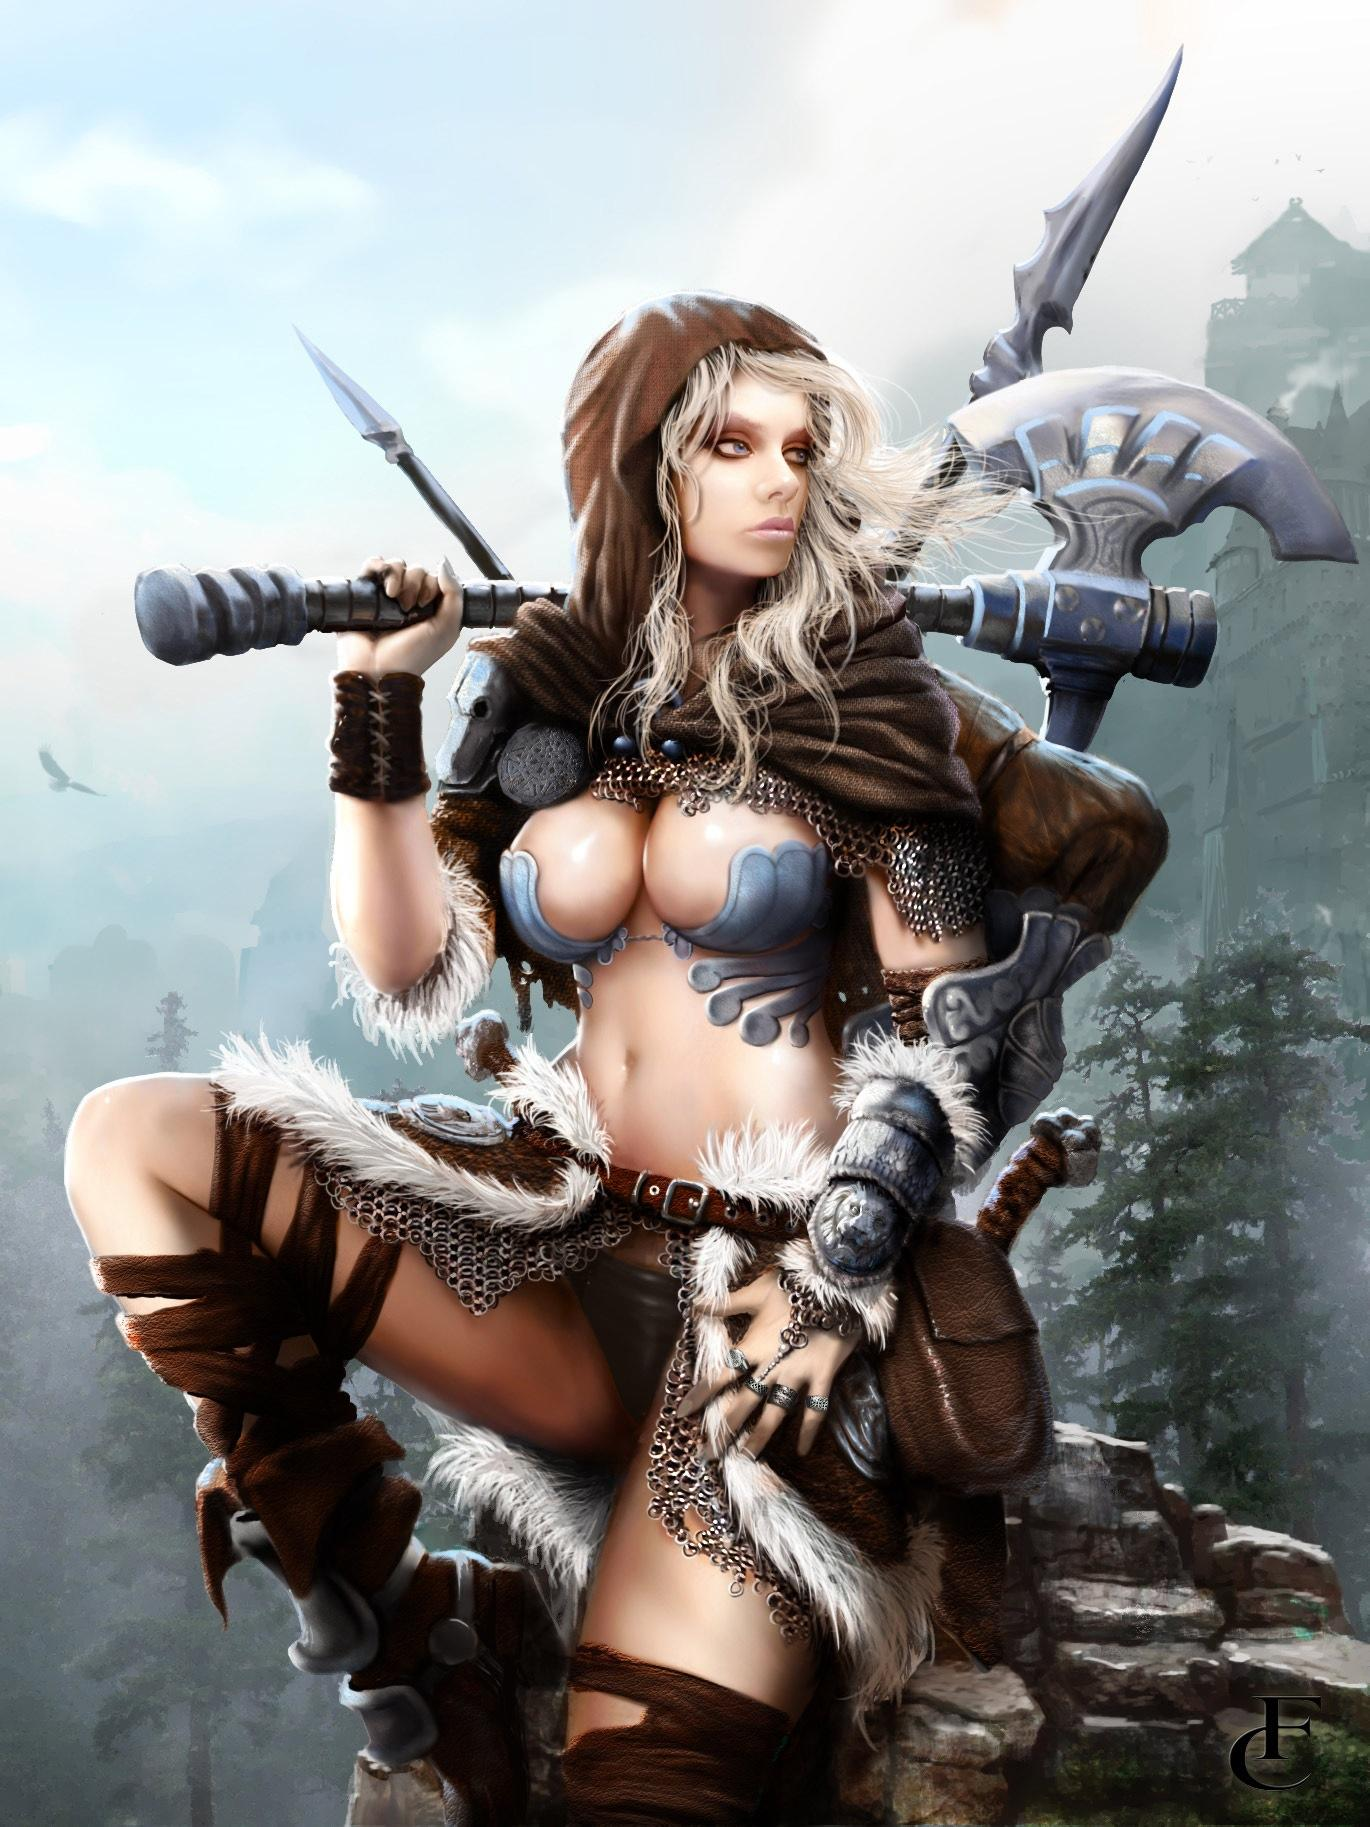 Warrior women fantasy art nackt photos